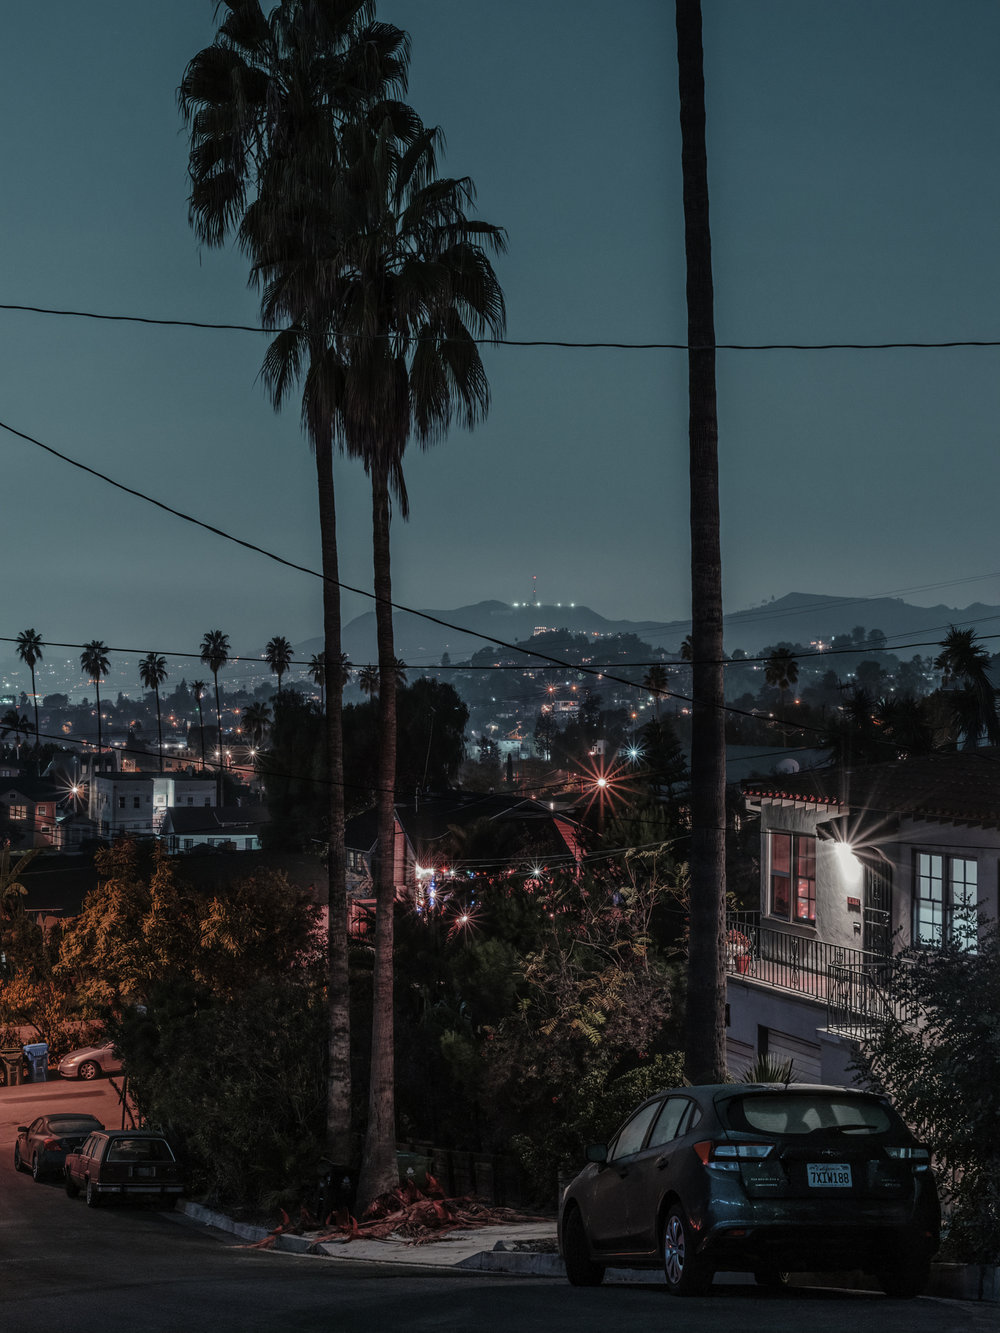 "View from MacBeth St. #1, Los Angeles, 2018.  40"" x 30"", Limited Edition of 2. Archival Pigment Print, Hahnemuhle Fine Art Paper.   Pricing & Purchasing Info"